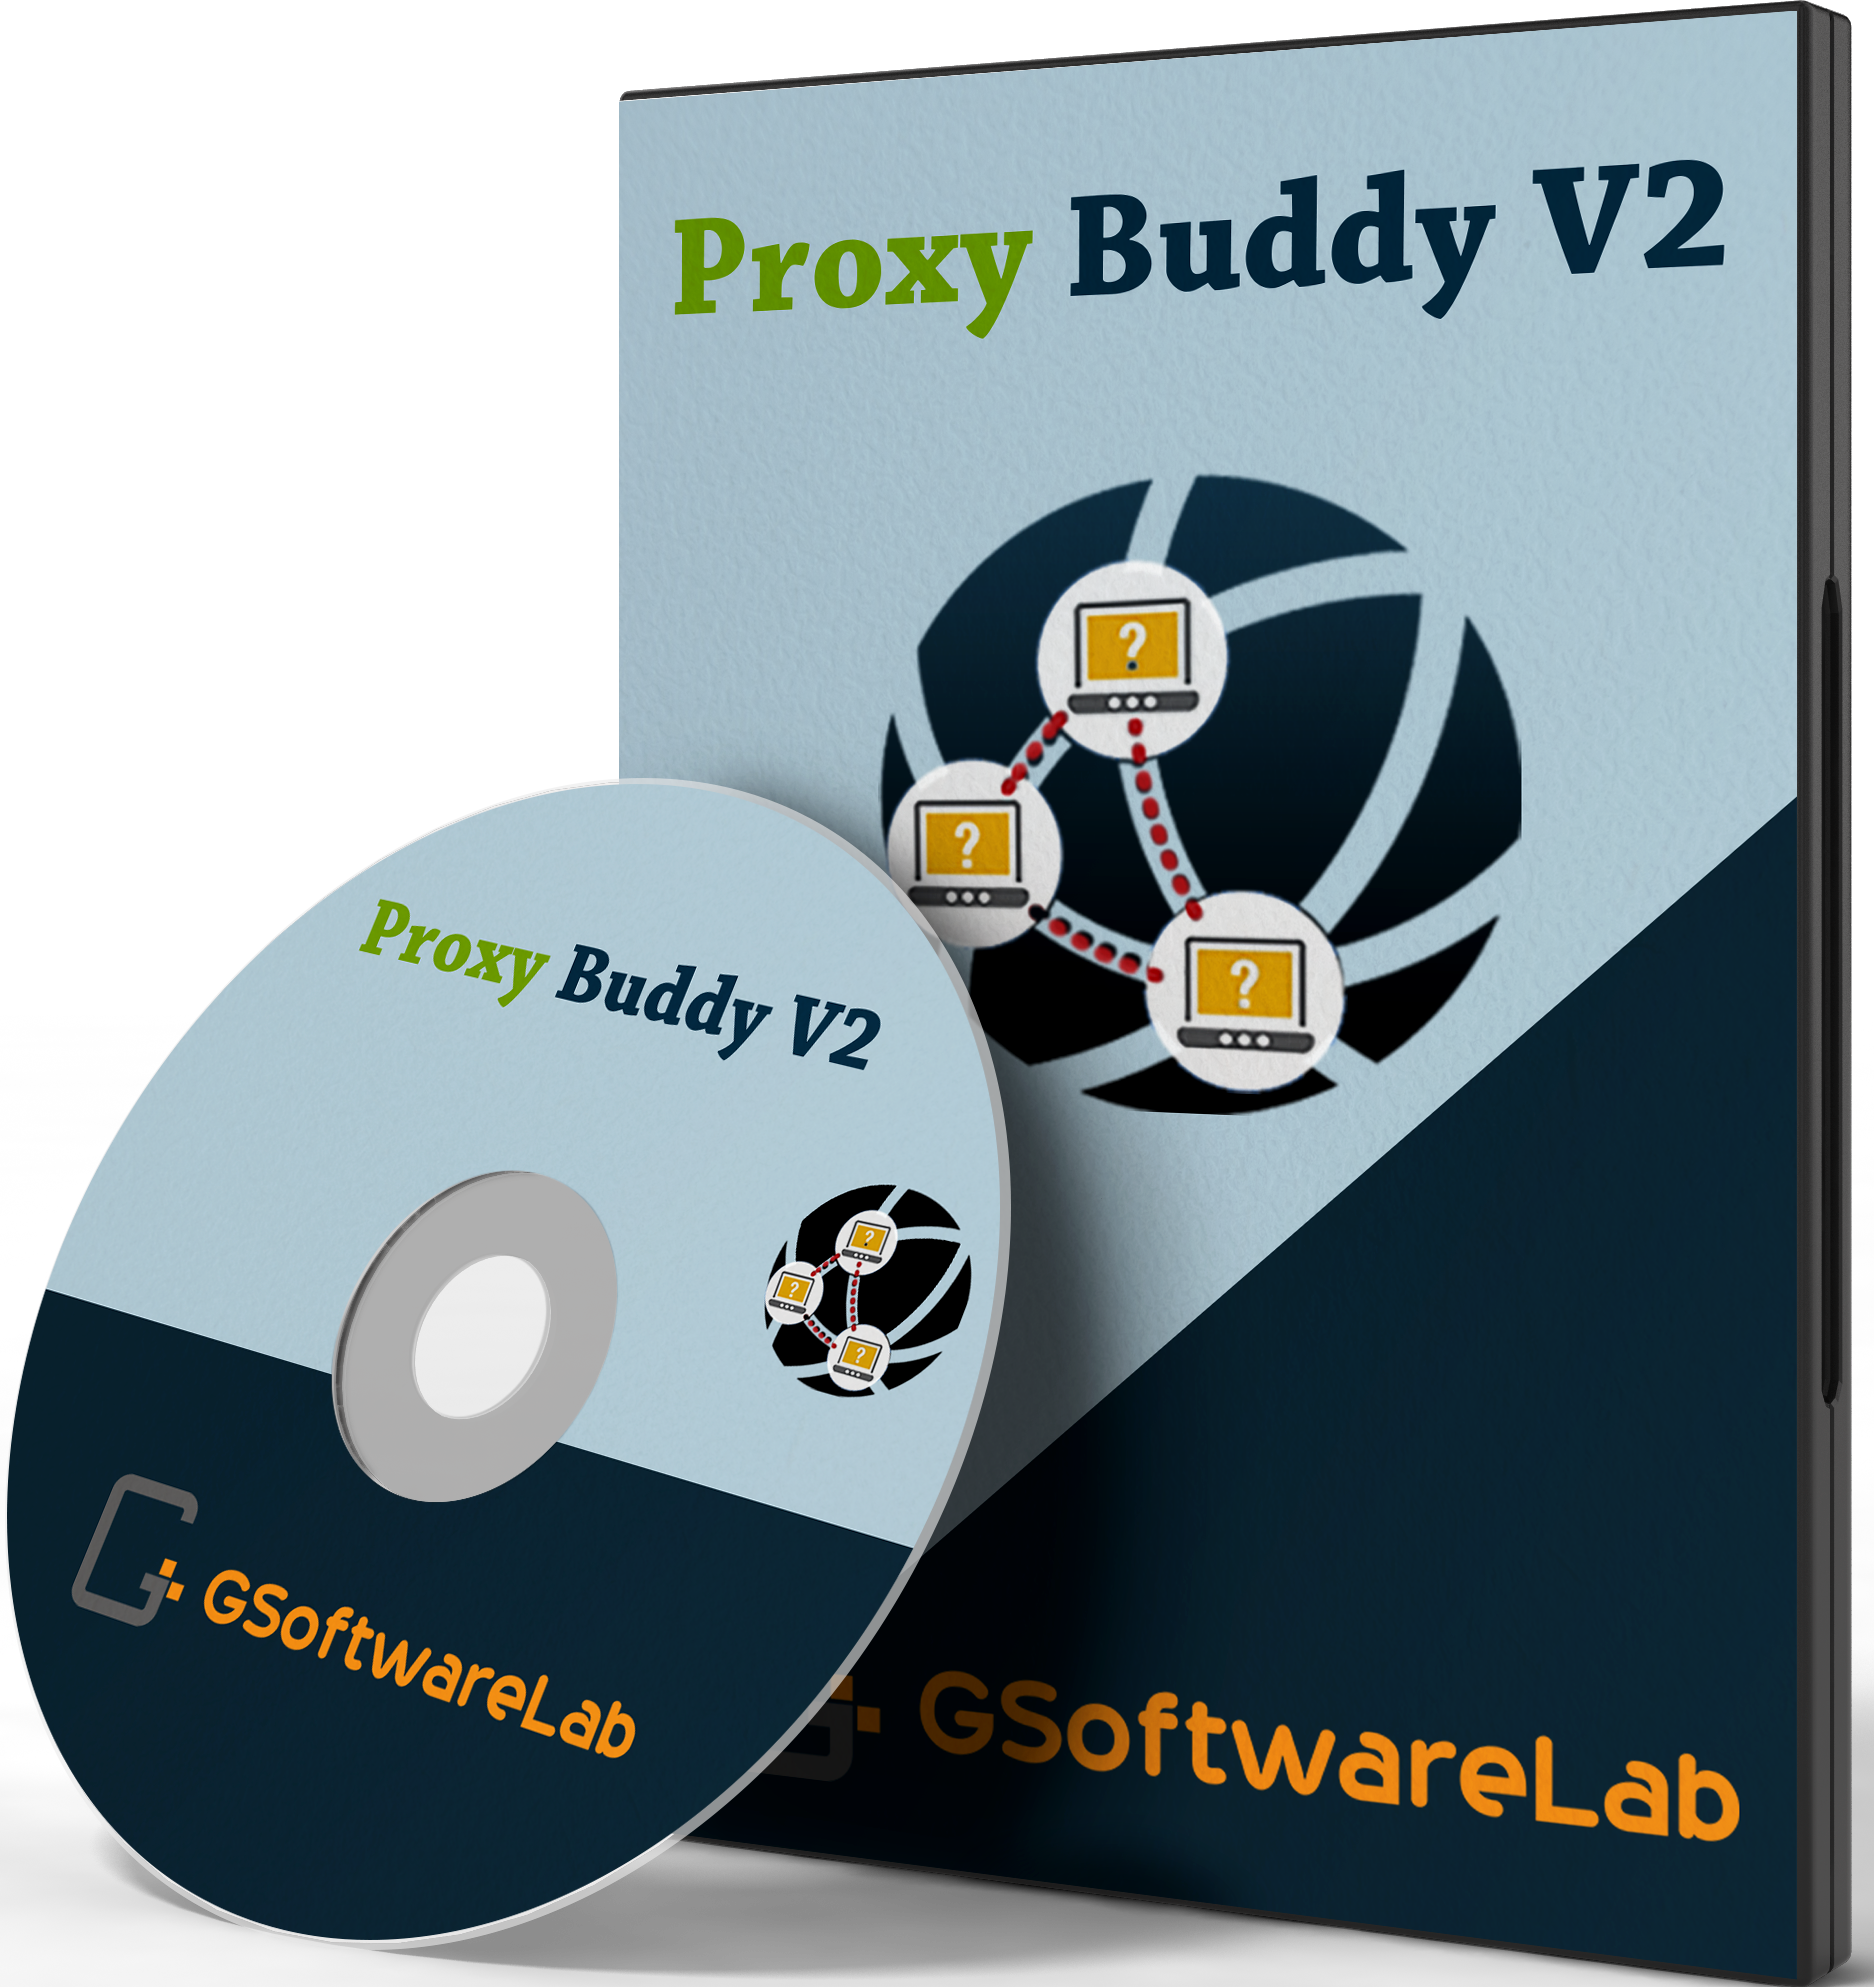 Proxy Buddy v3 - Fully Automated Proxy Scraper and Tester